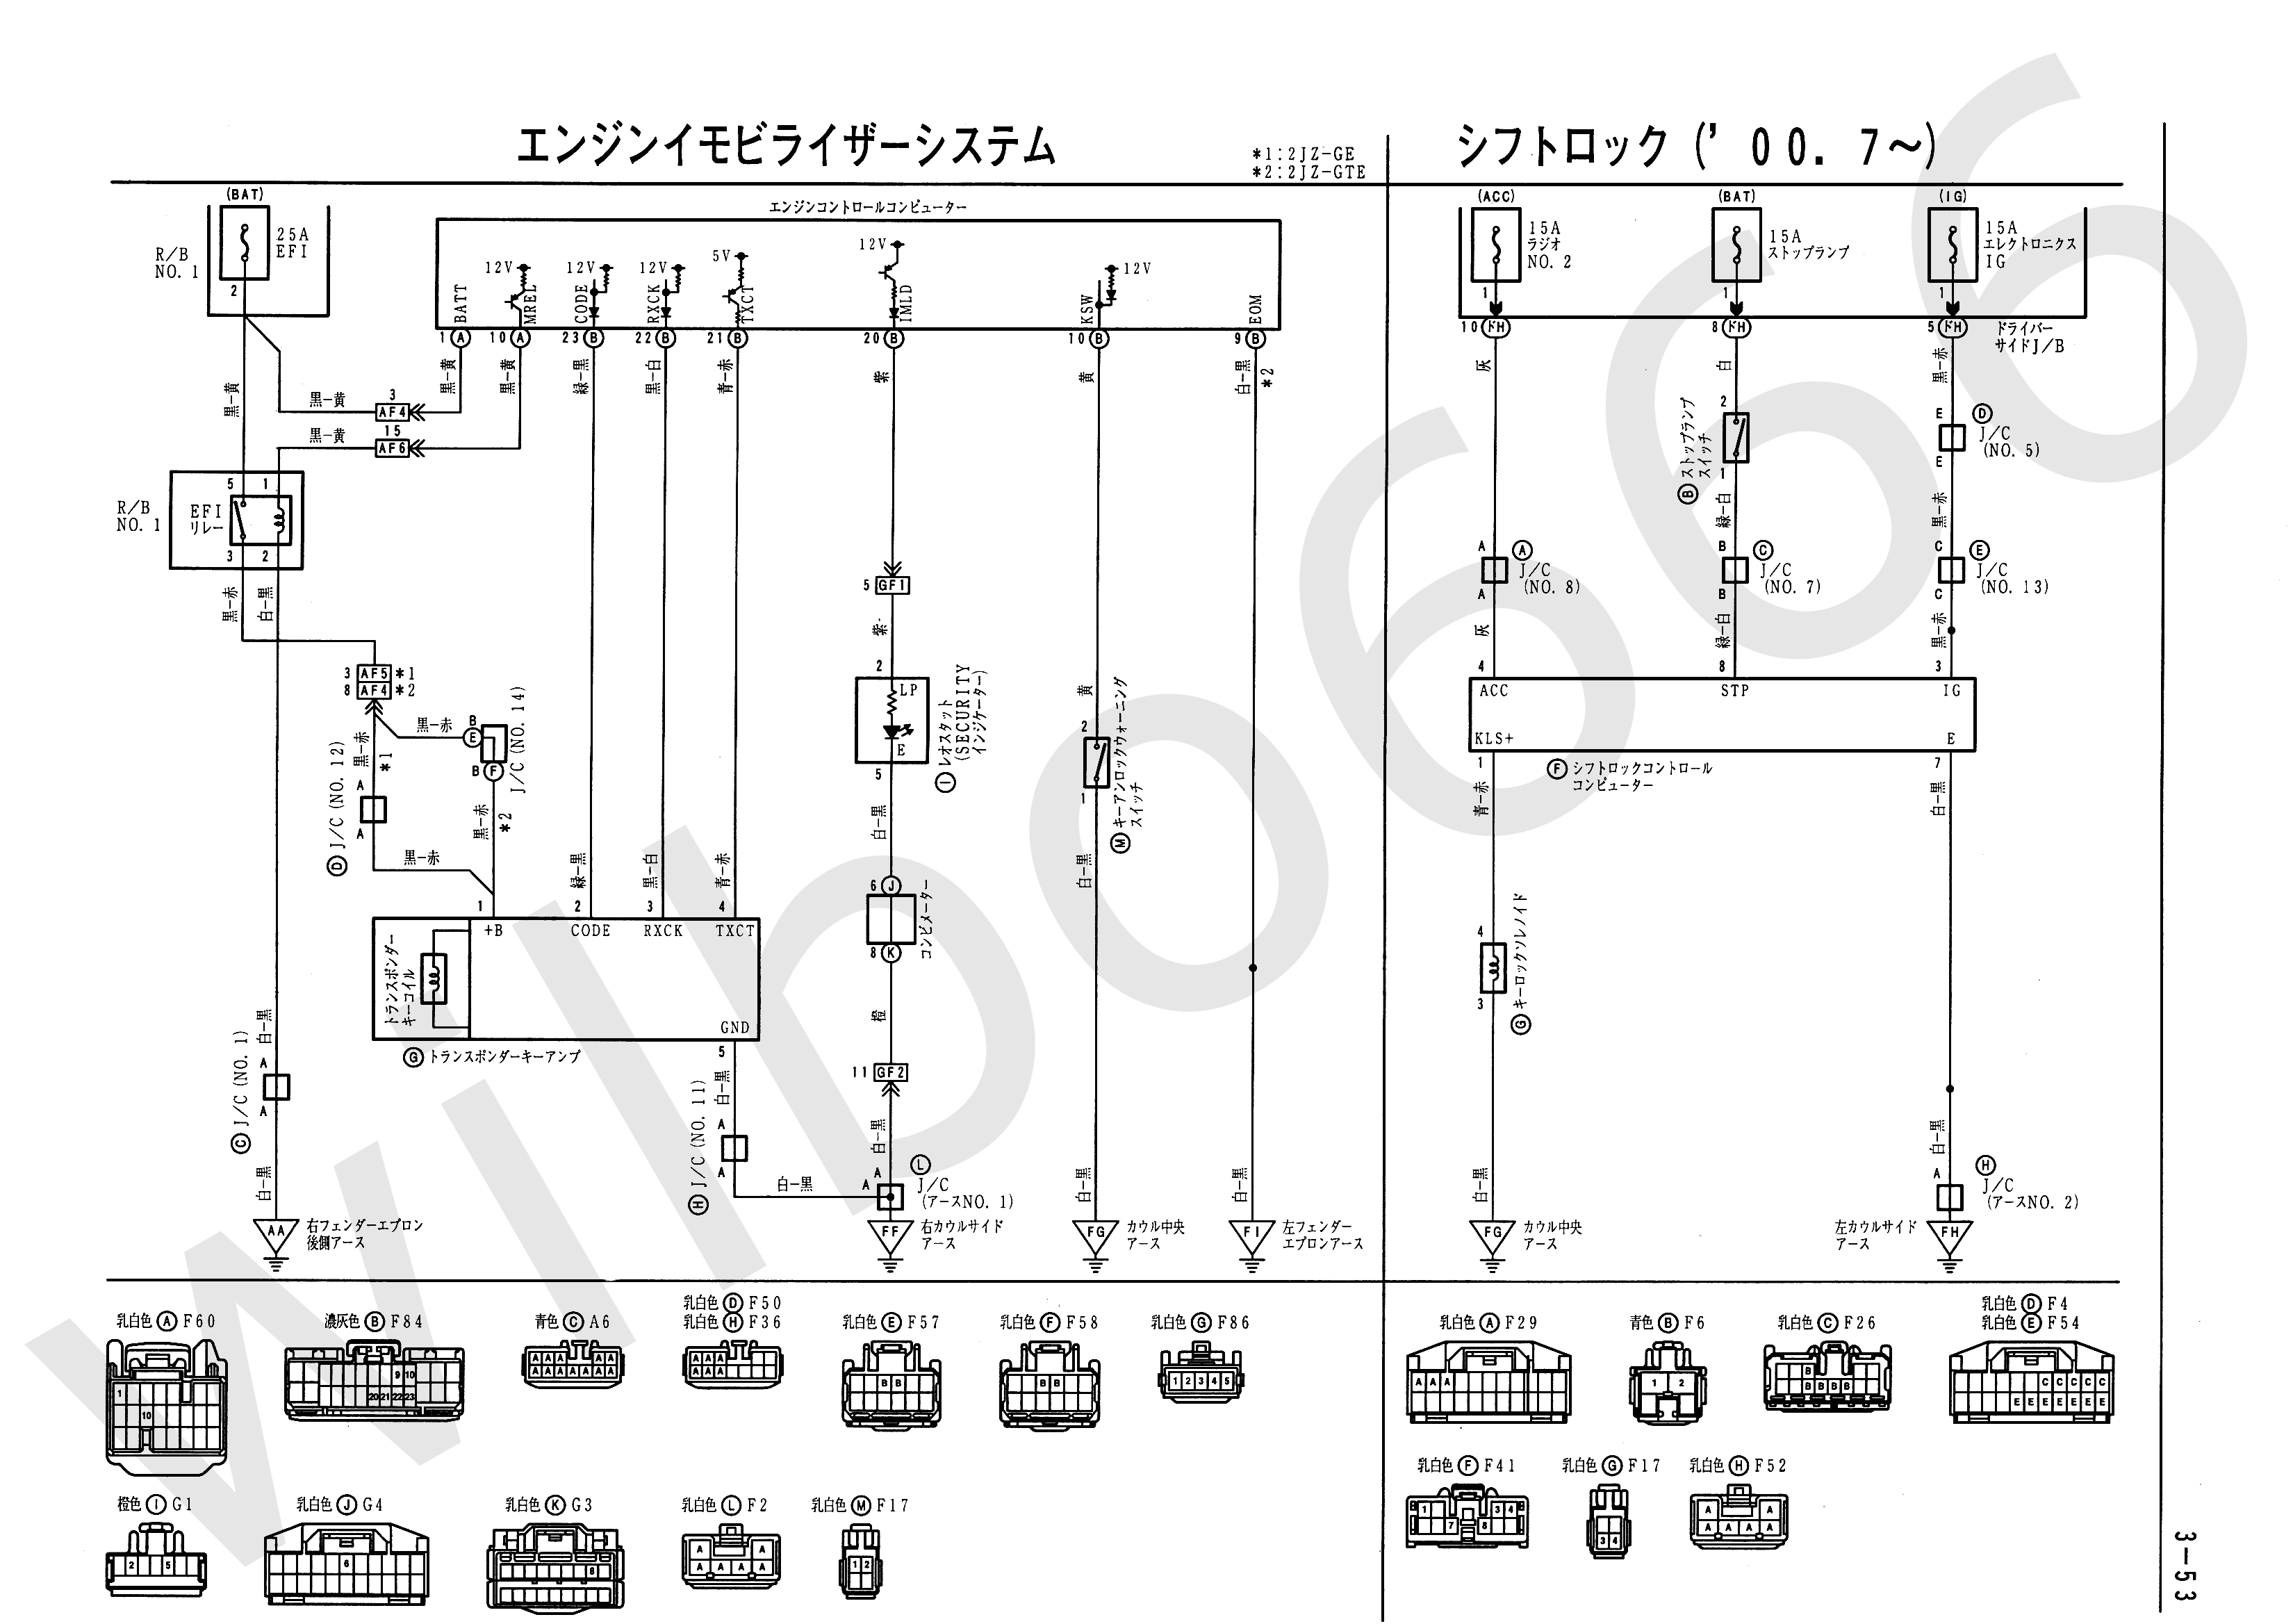 JZS161 Electrical Wiring Diagram 6748505 3 53 apexi vafc wiring diagram 2000 accord oil pressure wire diagram protectofier wiring diagram at soozxer.org